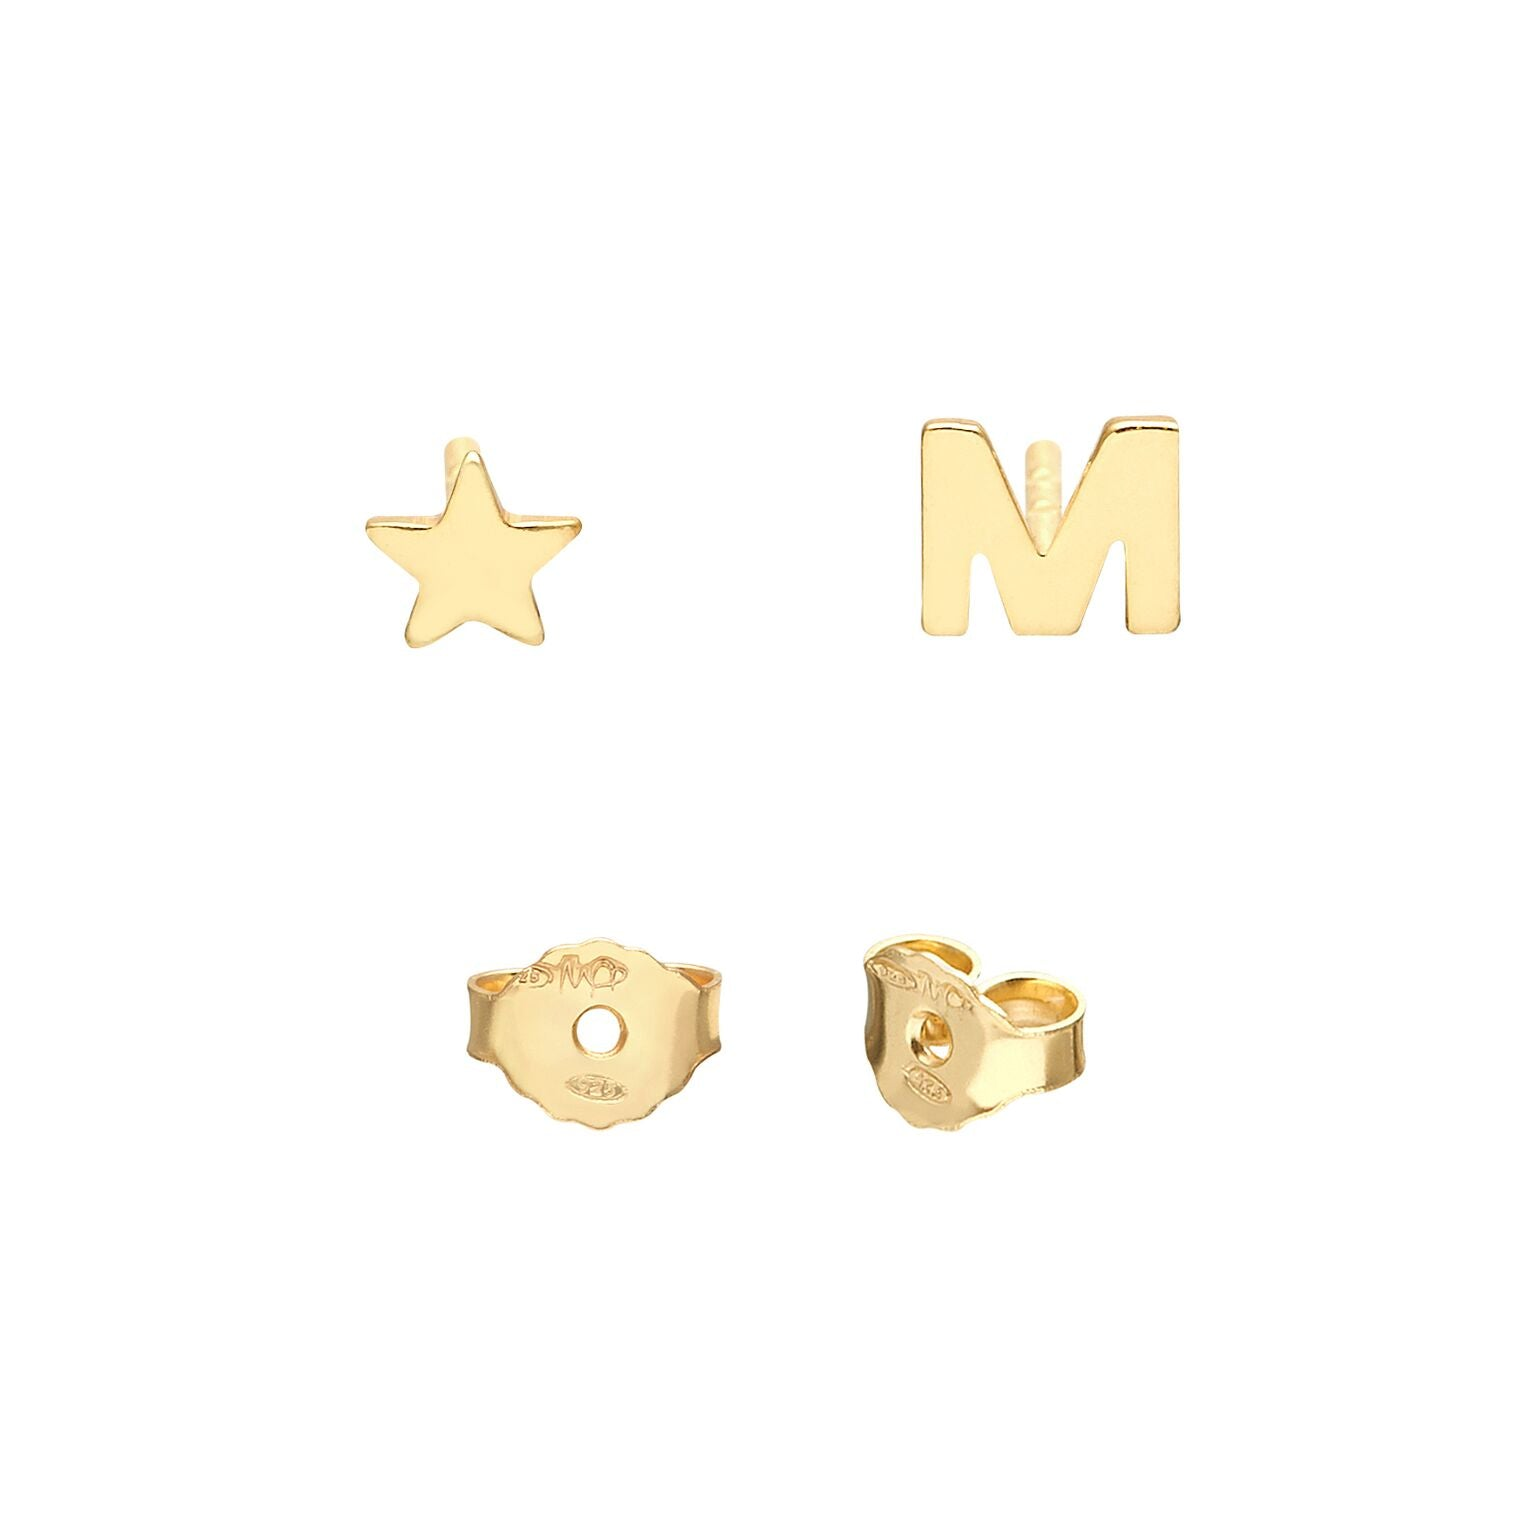 YOUR INITIAL+STAR STUD EARRINGS